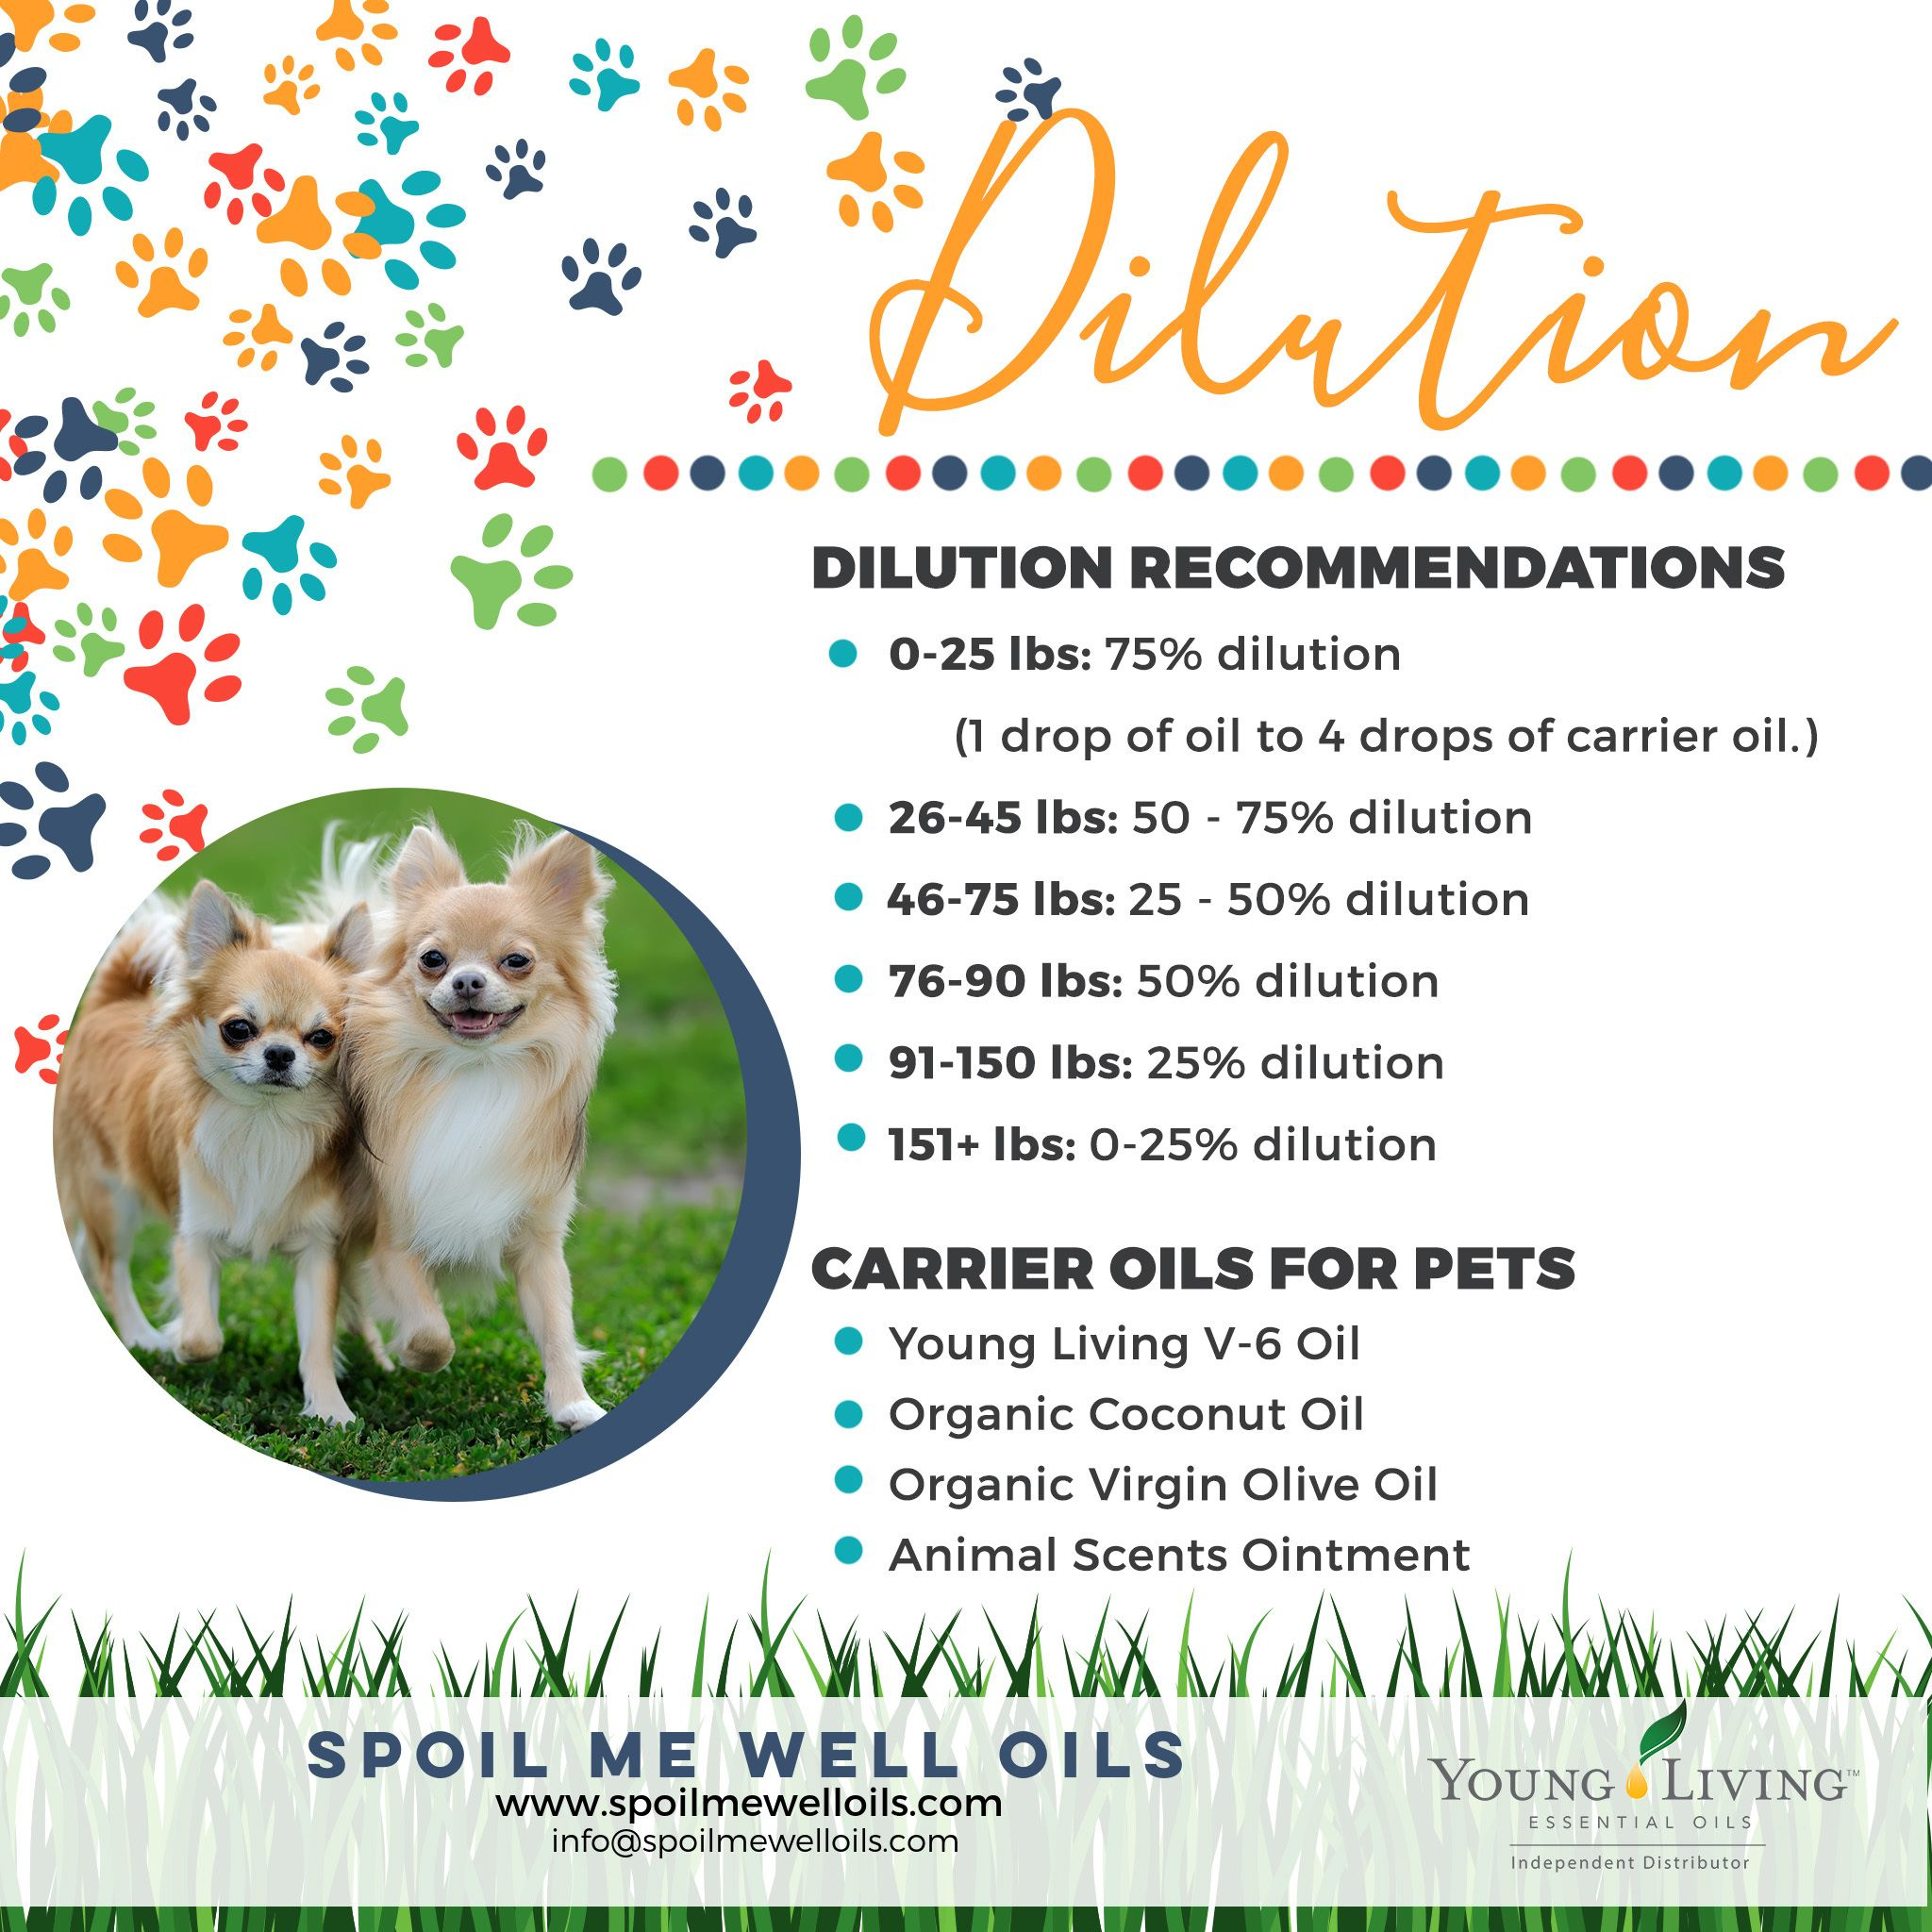 Essential oils for dogs find out more about the house garden dilution ratio recipes animals cats diy  much also rh pinterest